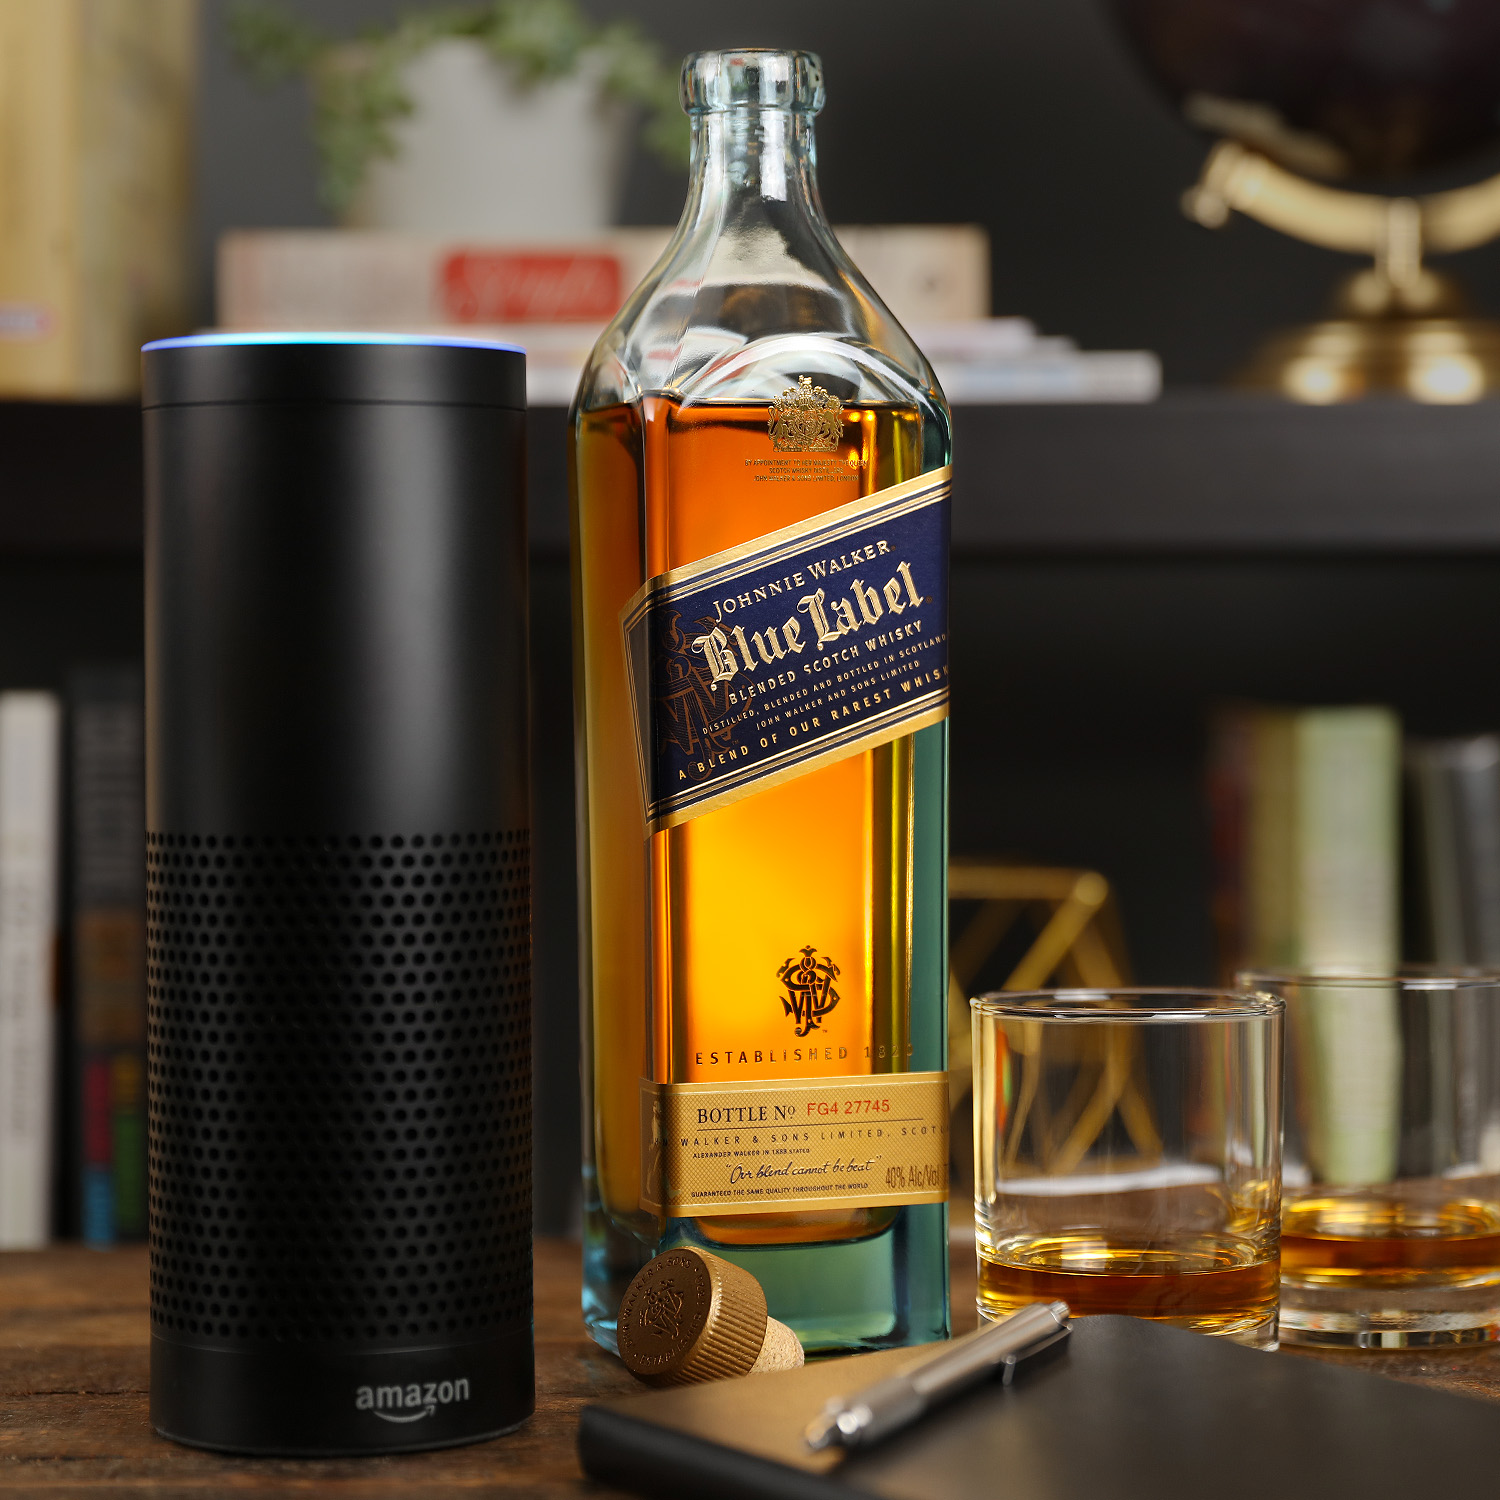 johnnie-walker-collaborates-with-amazon-to-develop-an-innovative-alexa-skill-bringing-to-life-over-two-centuries-of-heritage-and-blending-expertise